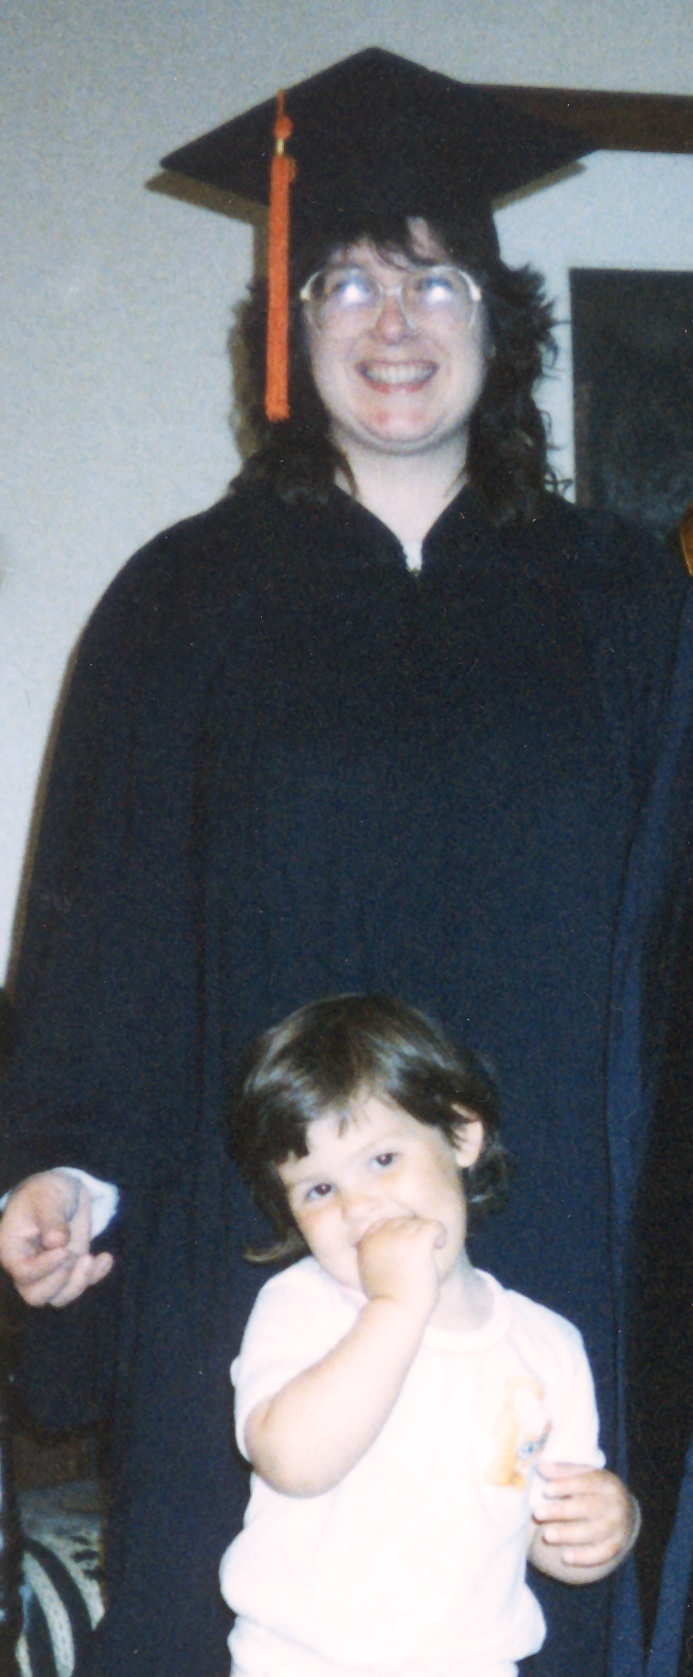 julie_graduation_photo_cropped_1.jpg